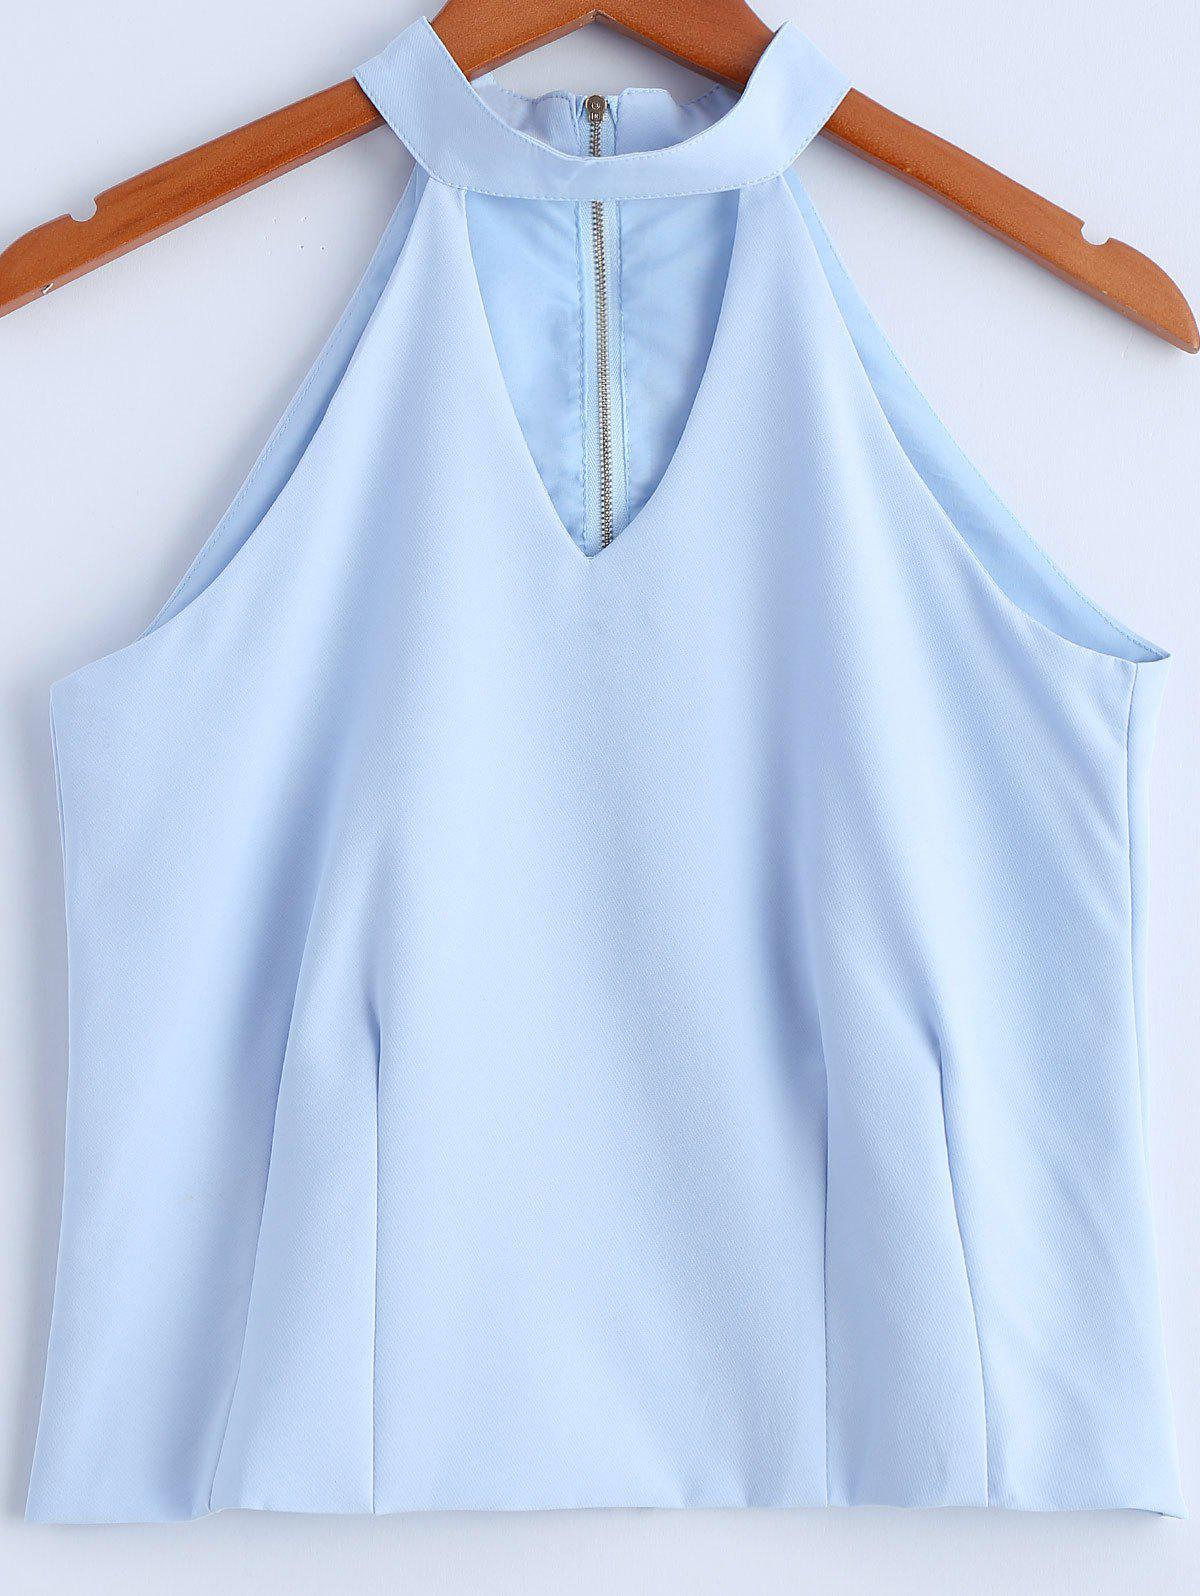 Stylish Women's Solid Color Jewel Neck Cut Out Zipper Fly Sleeveless Top - LIGHT BLUE M